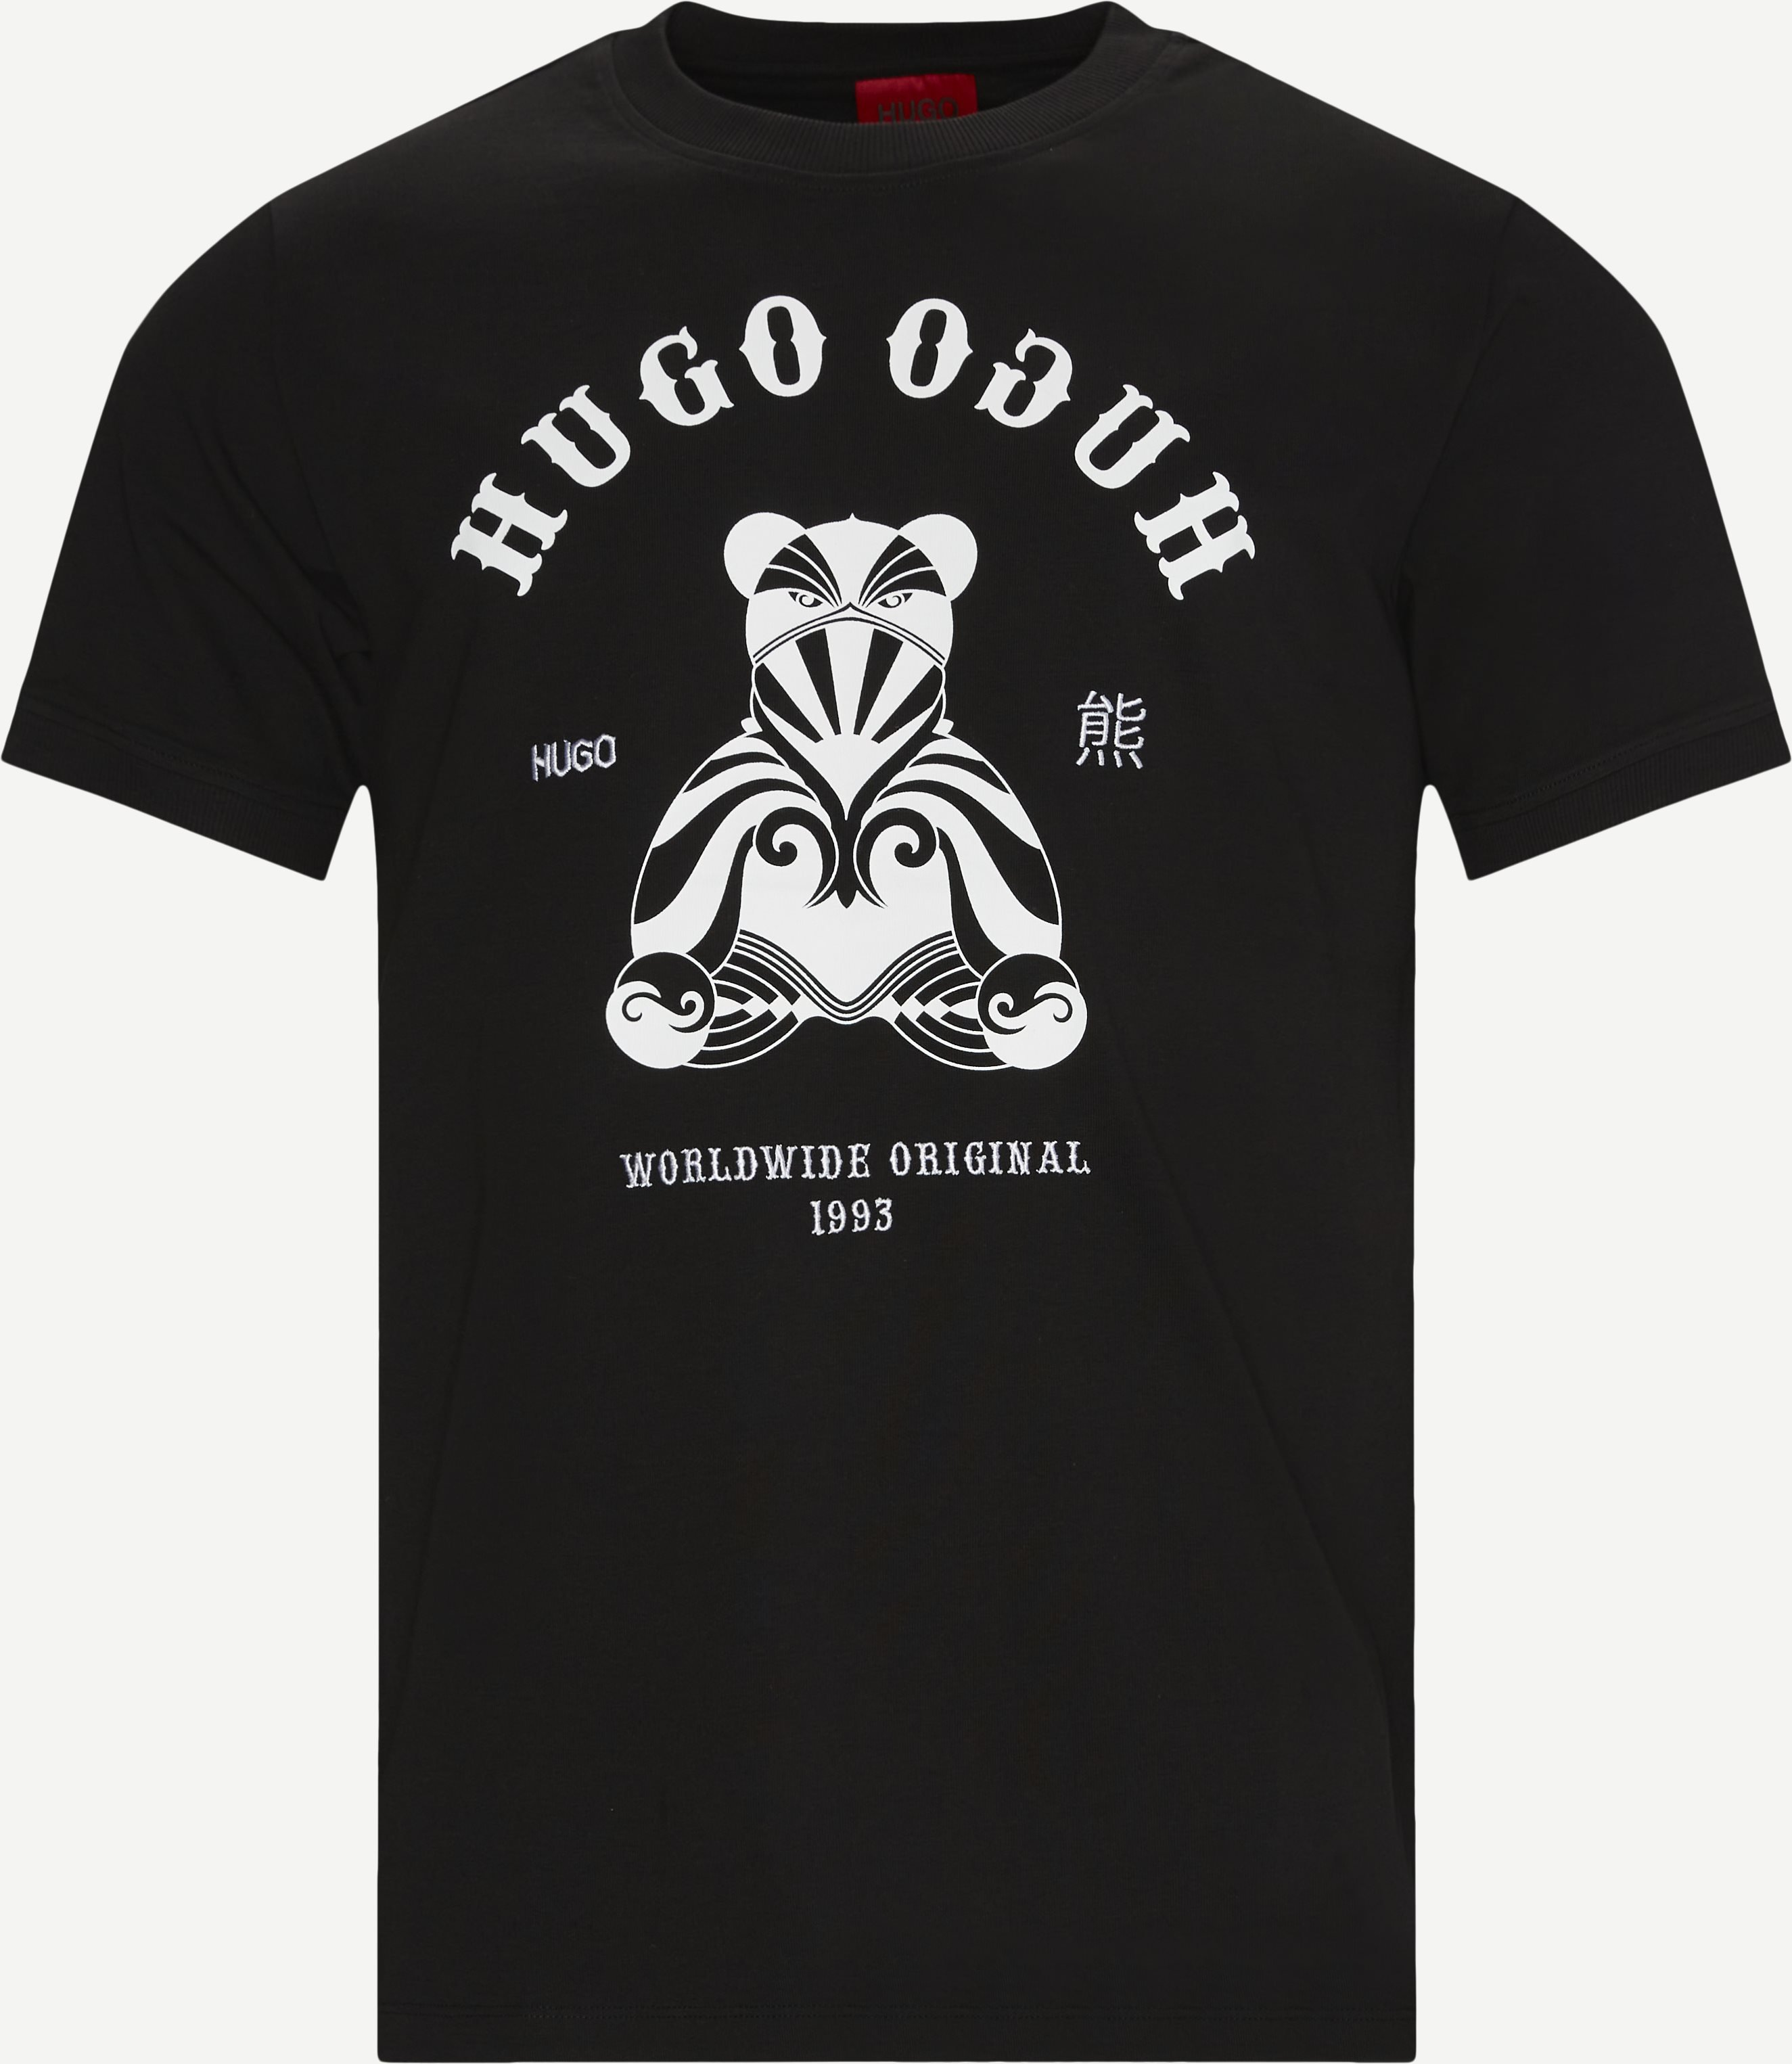 Duto T-shirt - T-shirts - Regular - Svart